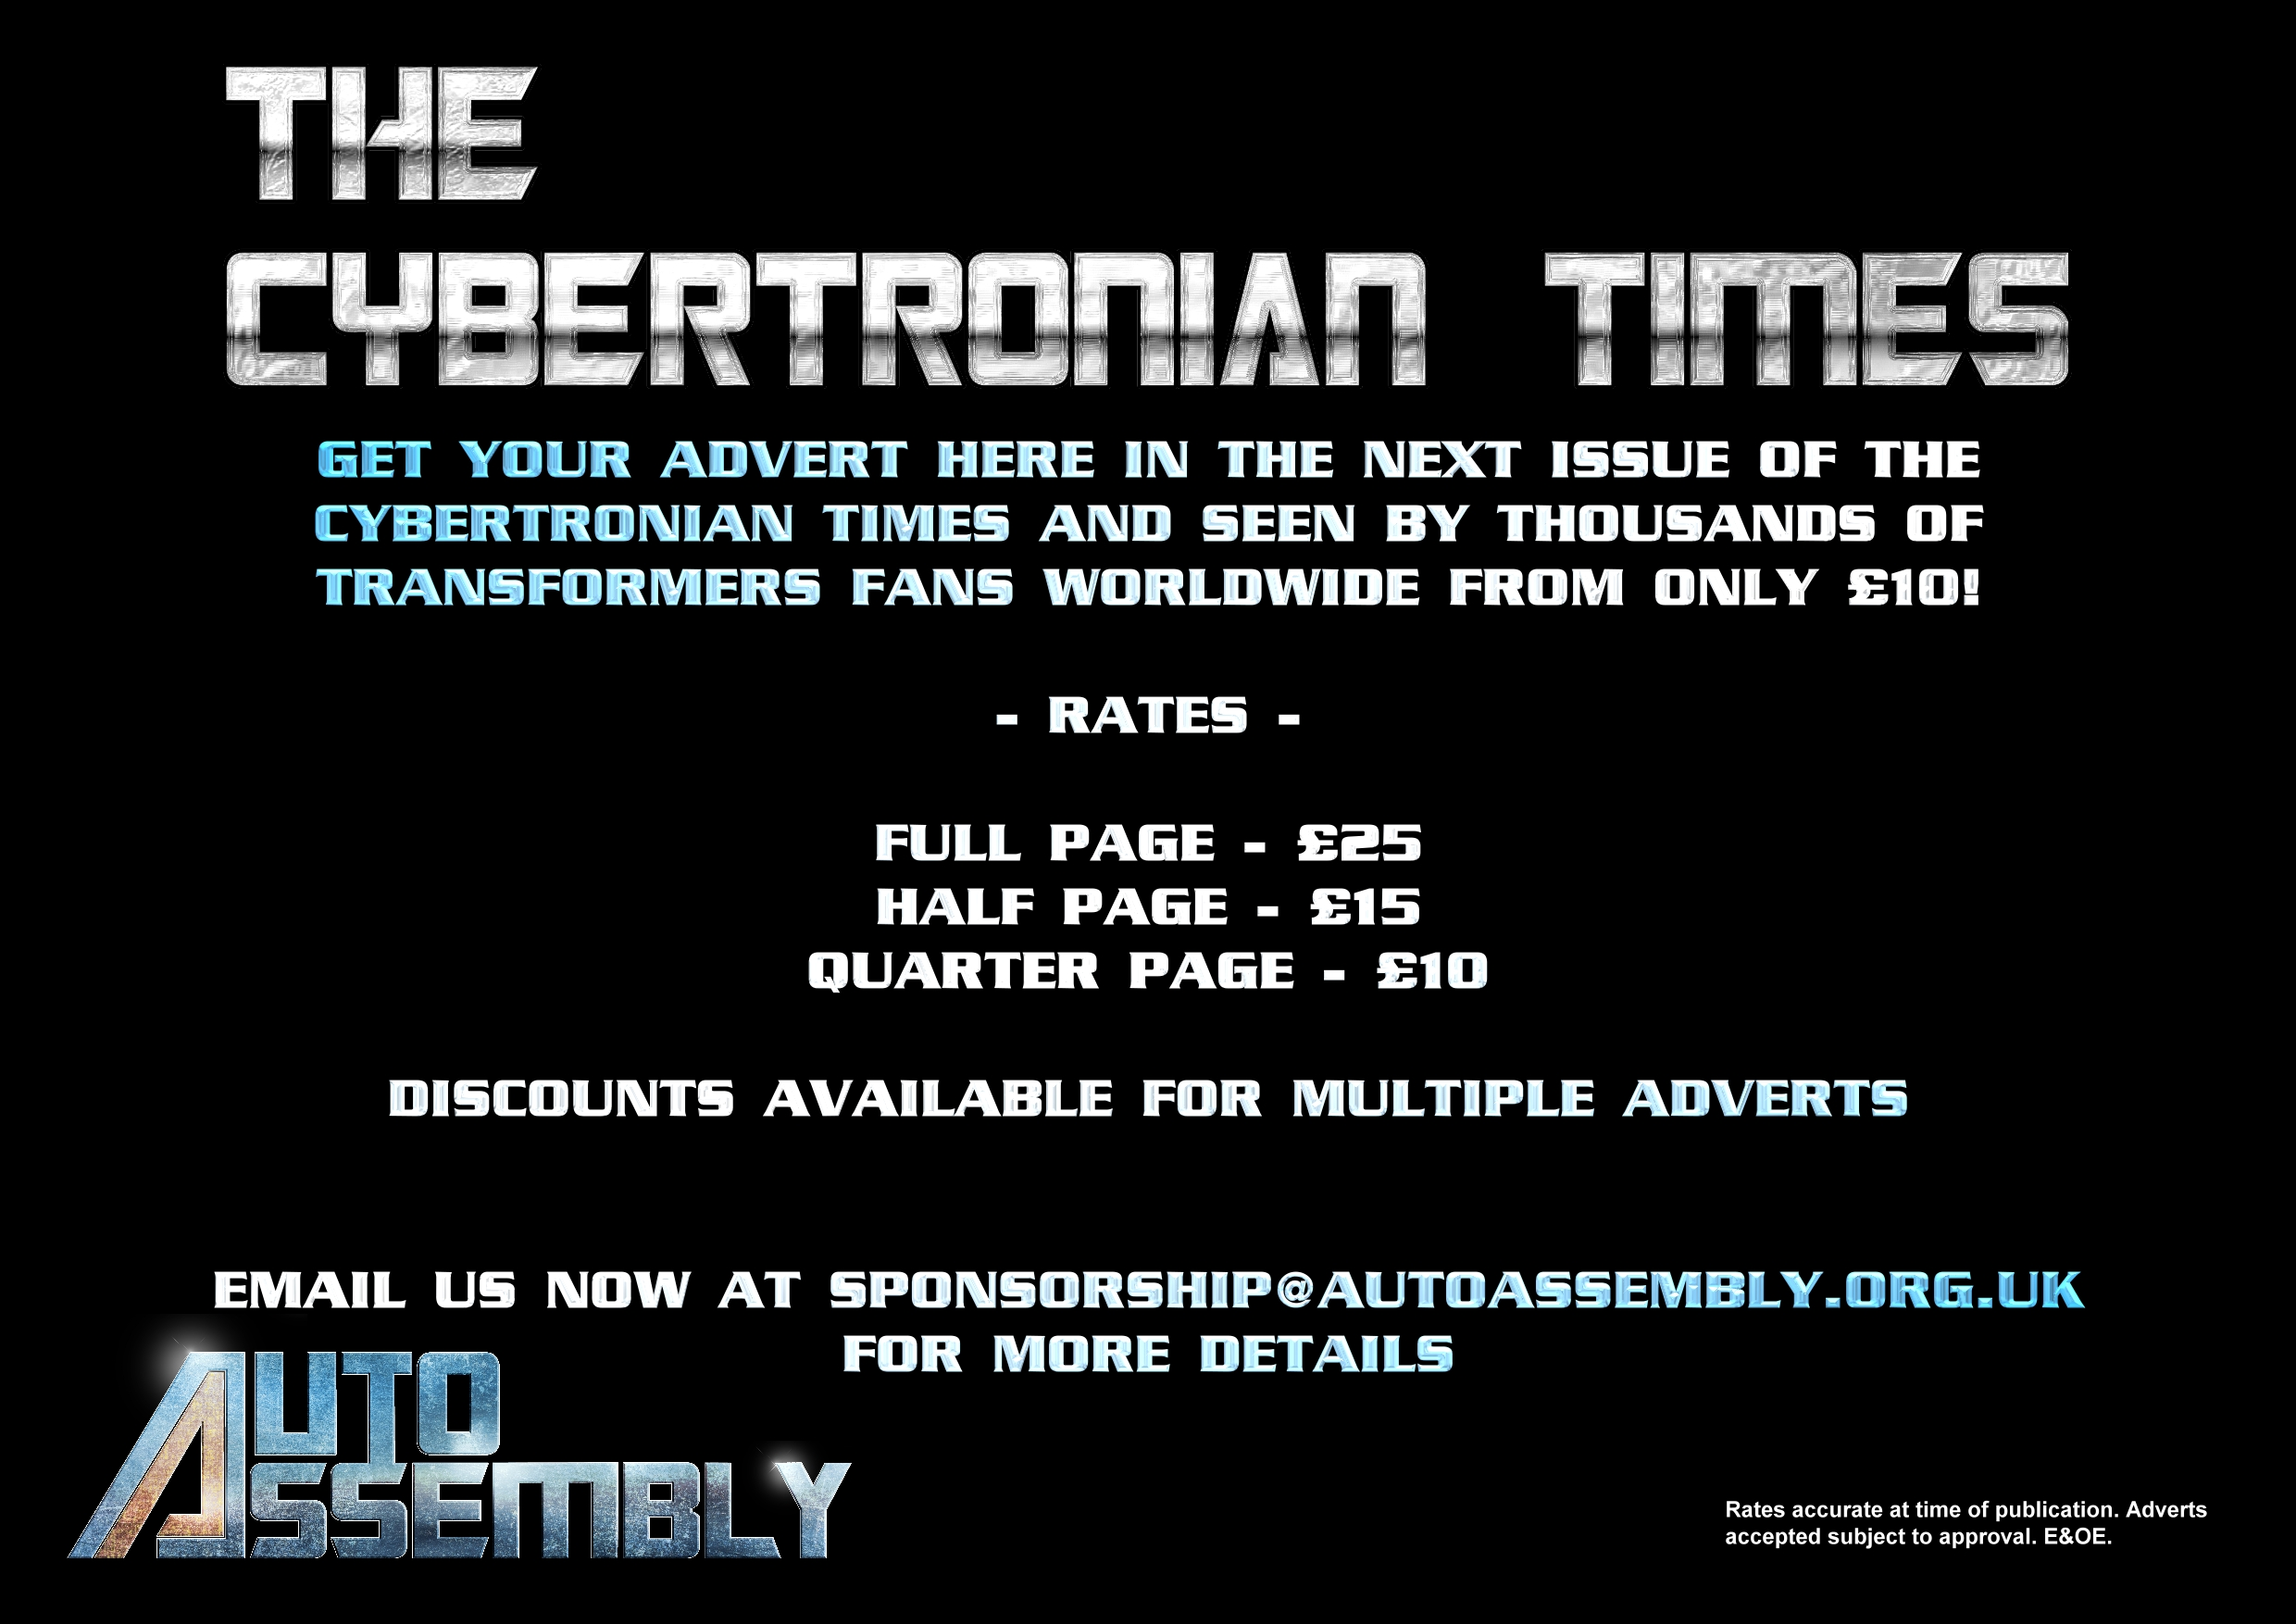 The Cybertronian TImes Advert Rates